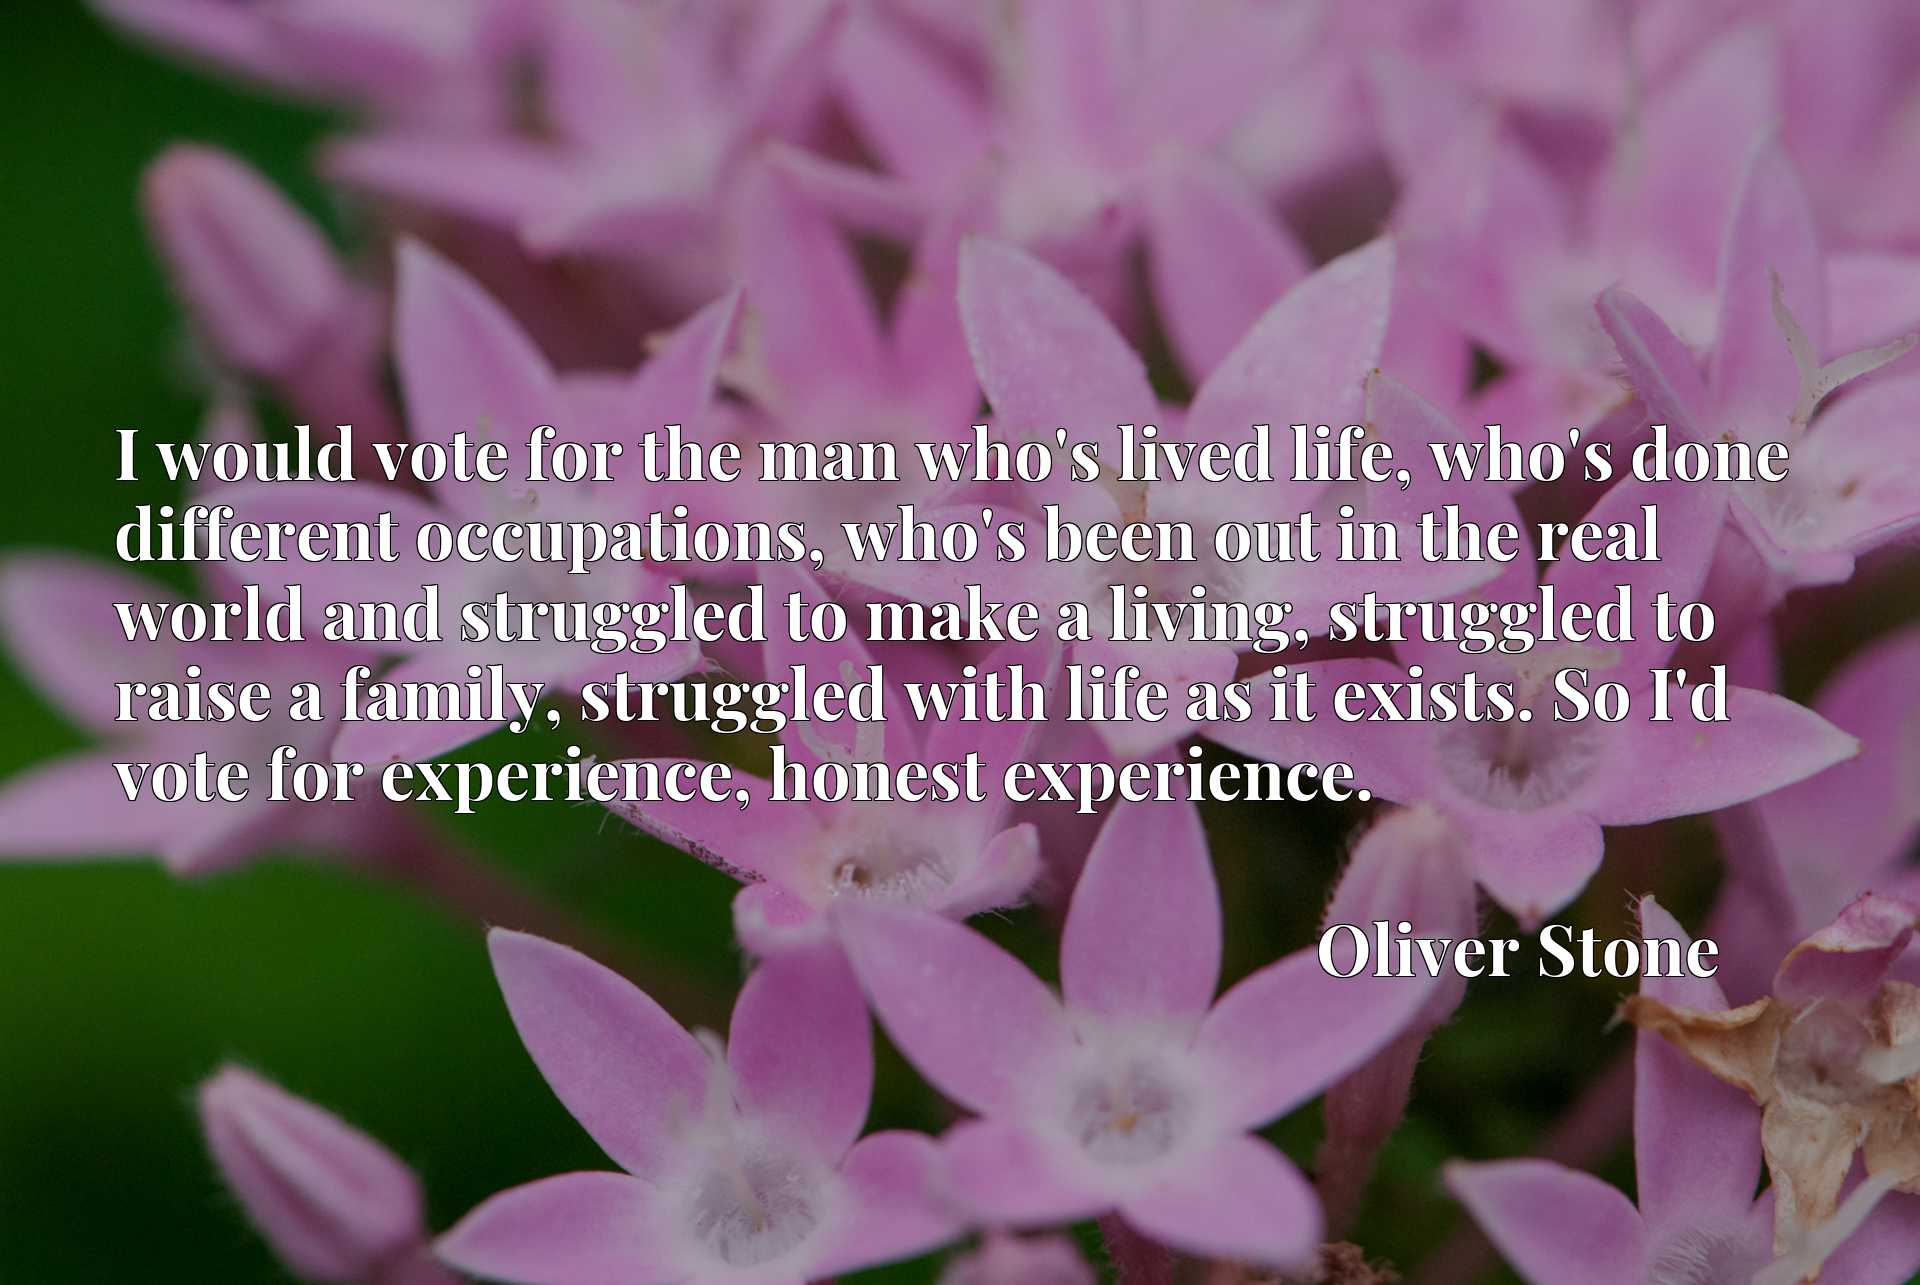 I would vote for the man who's lived life, who's done different occupations, who's been out in the real world and struggled to make a living, struggled to raise a family, struggled with life as it exists. So I'd vote for experience, honest experience.